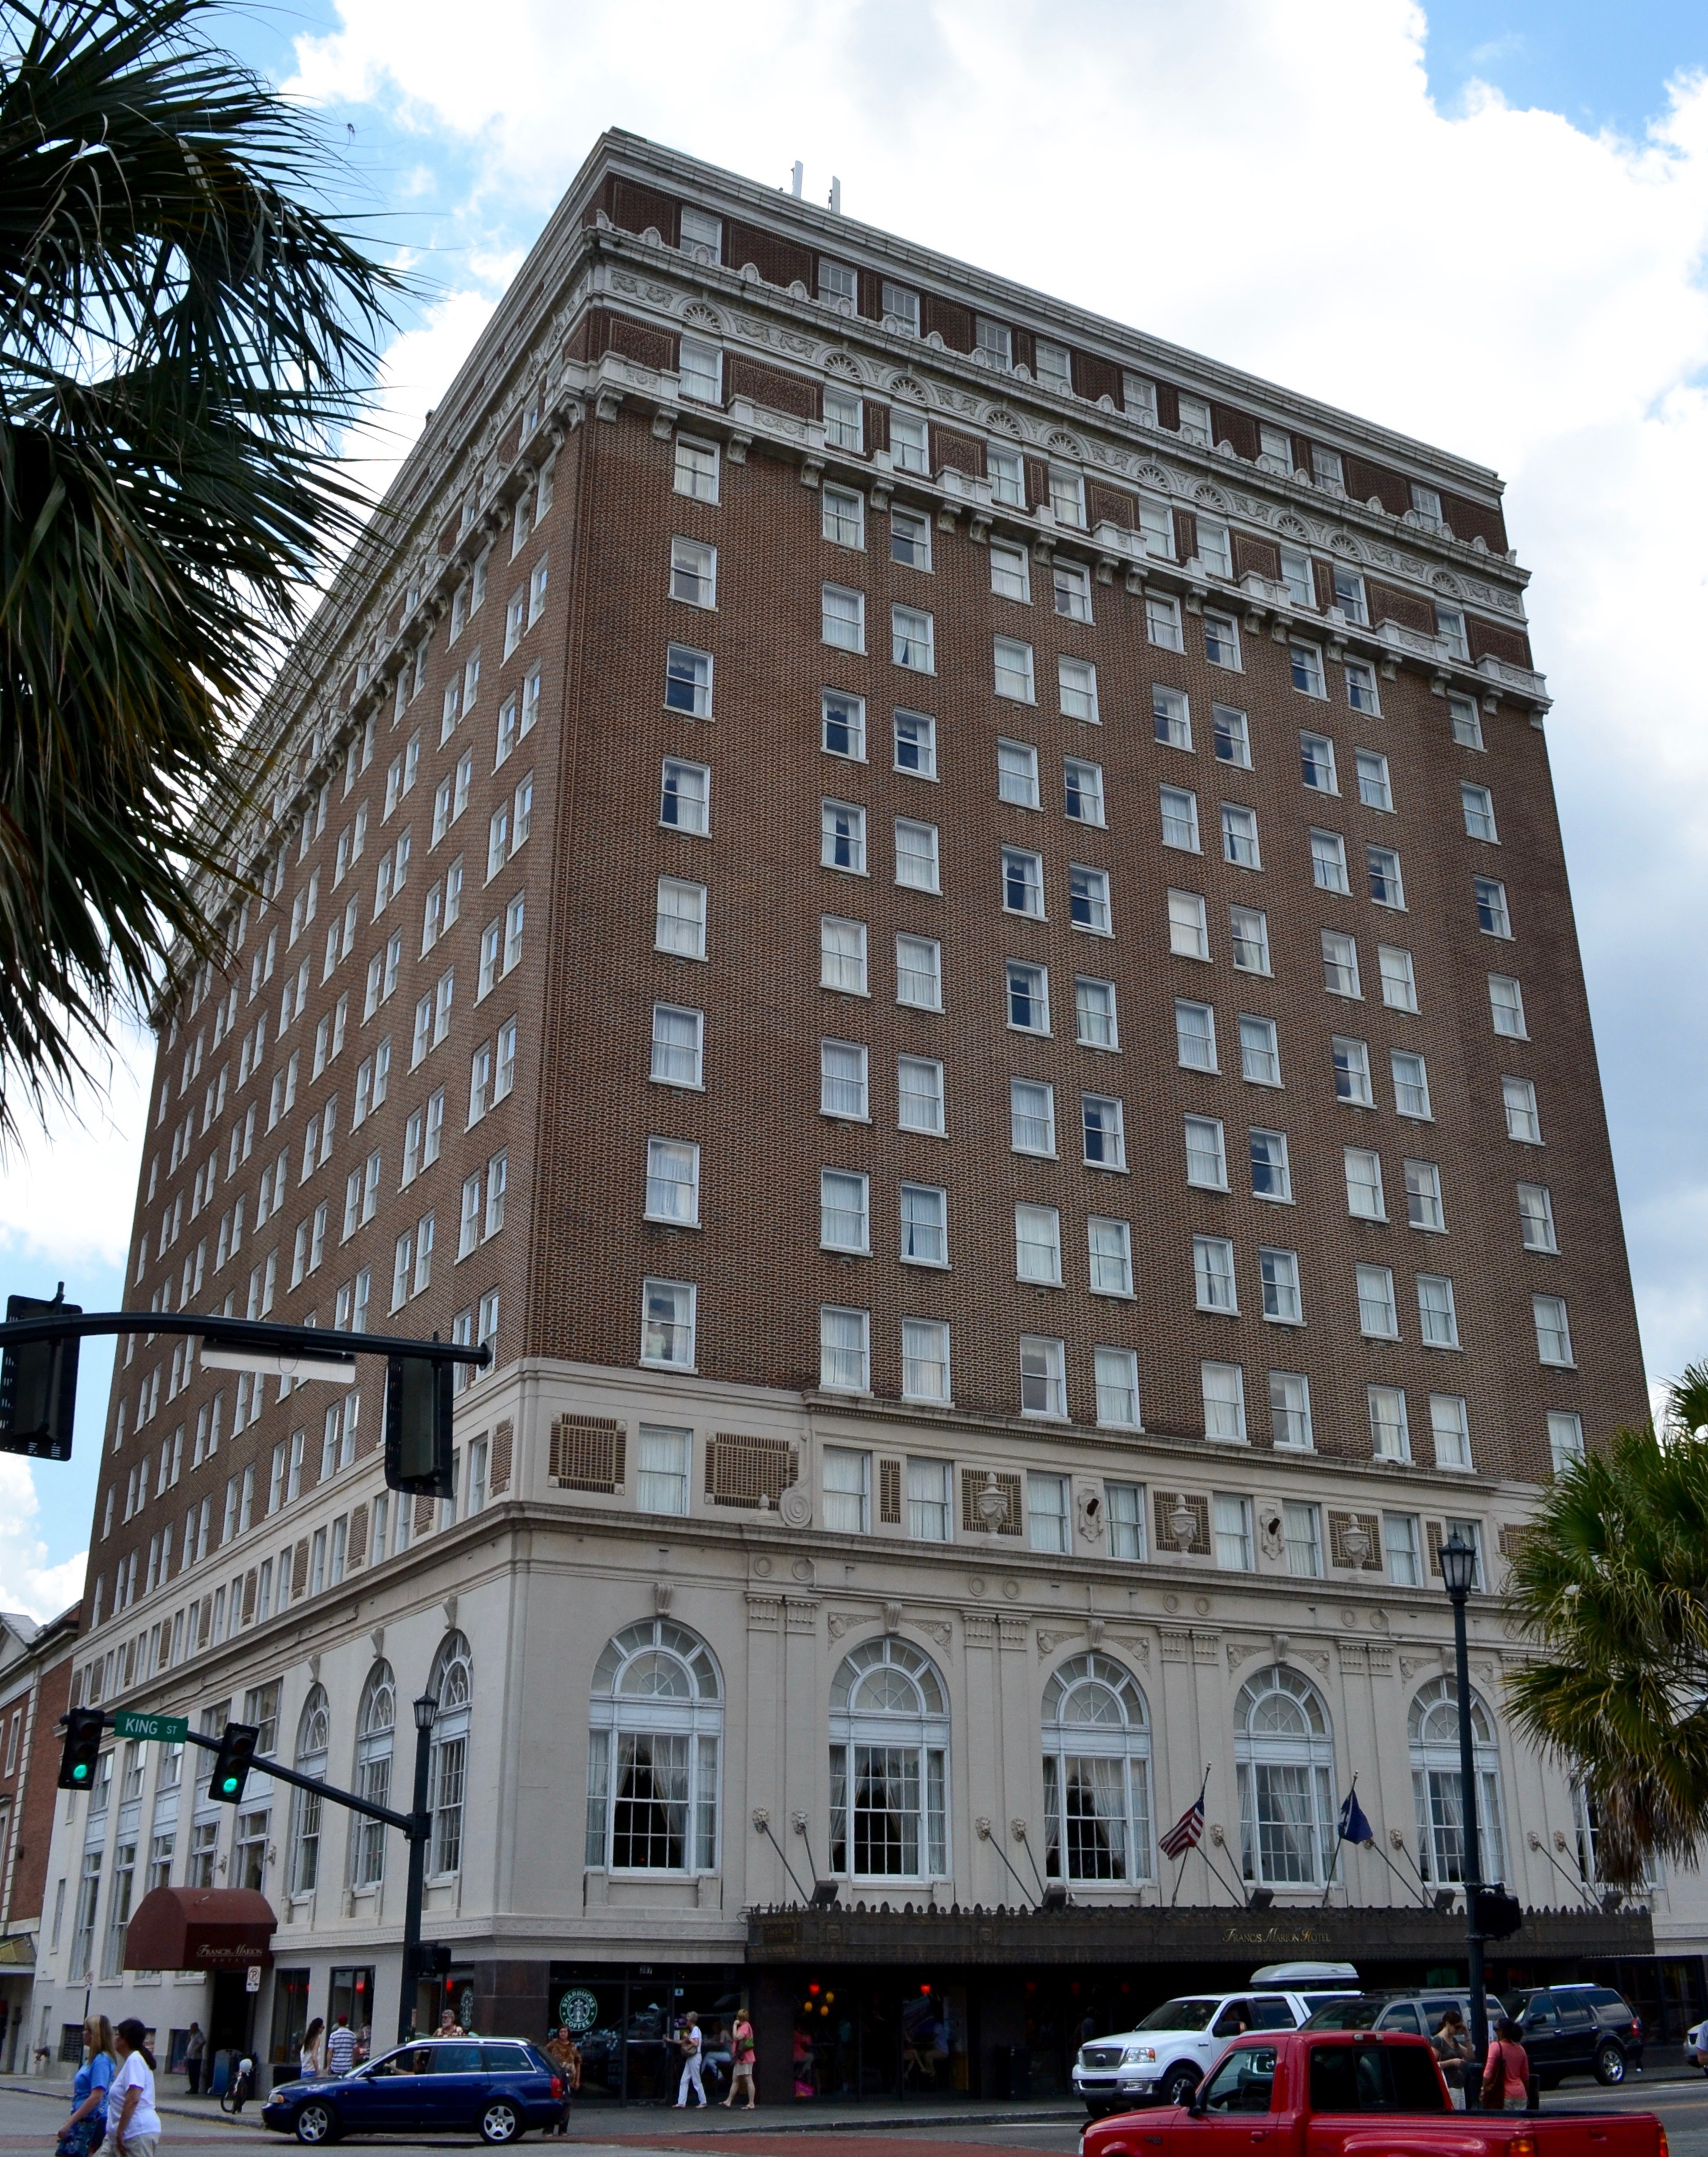 rion Hotel Charleston SC ghosts haunted